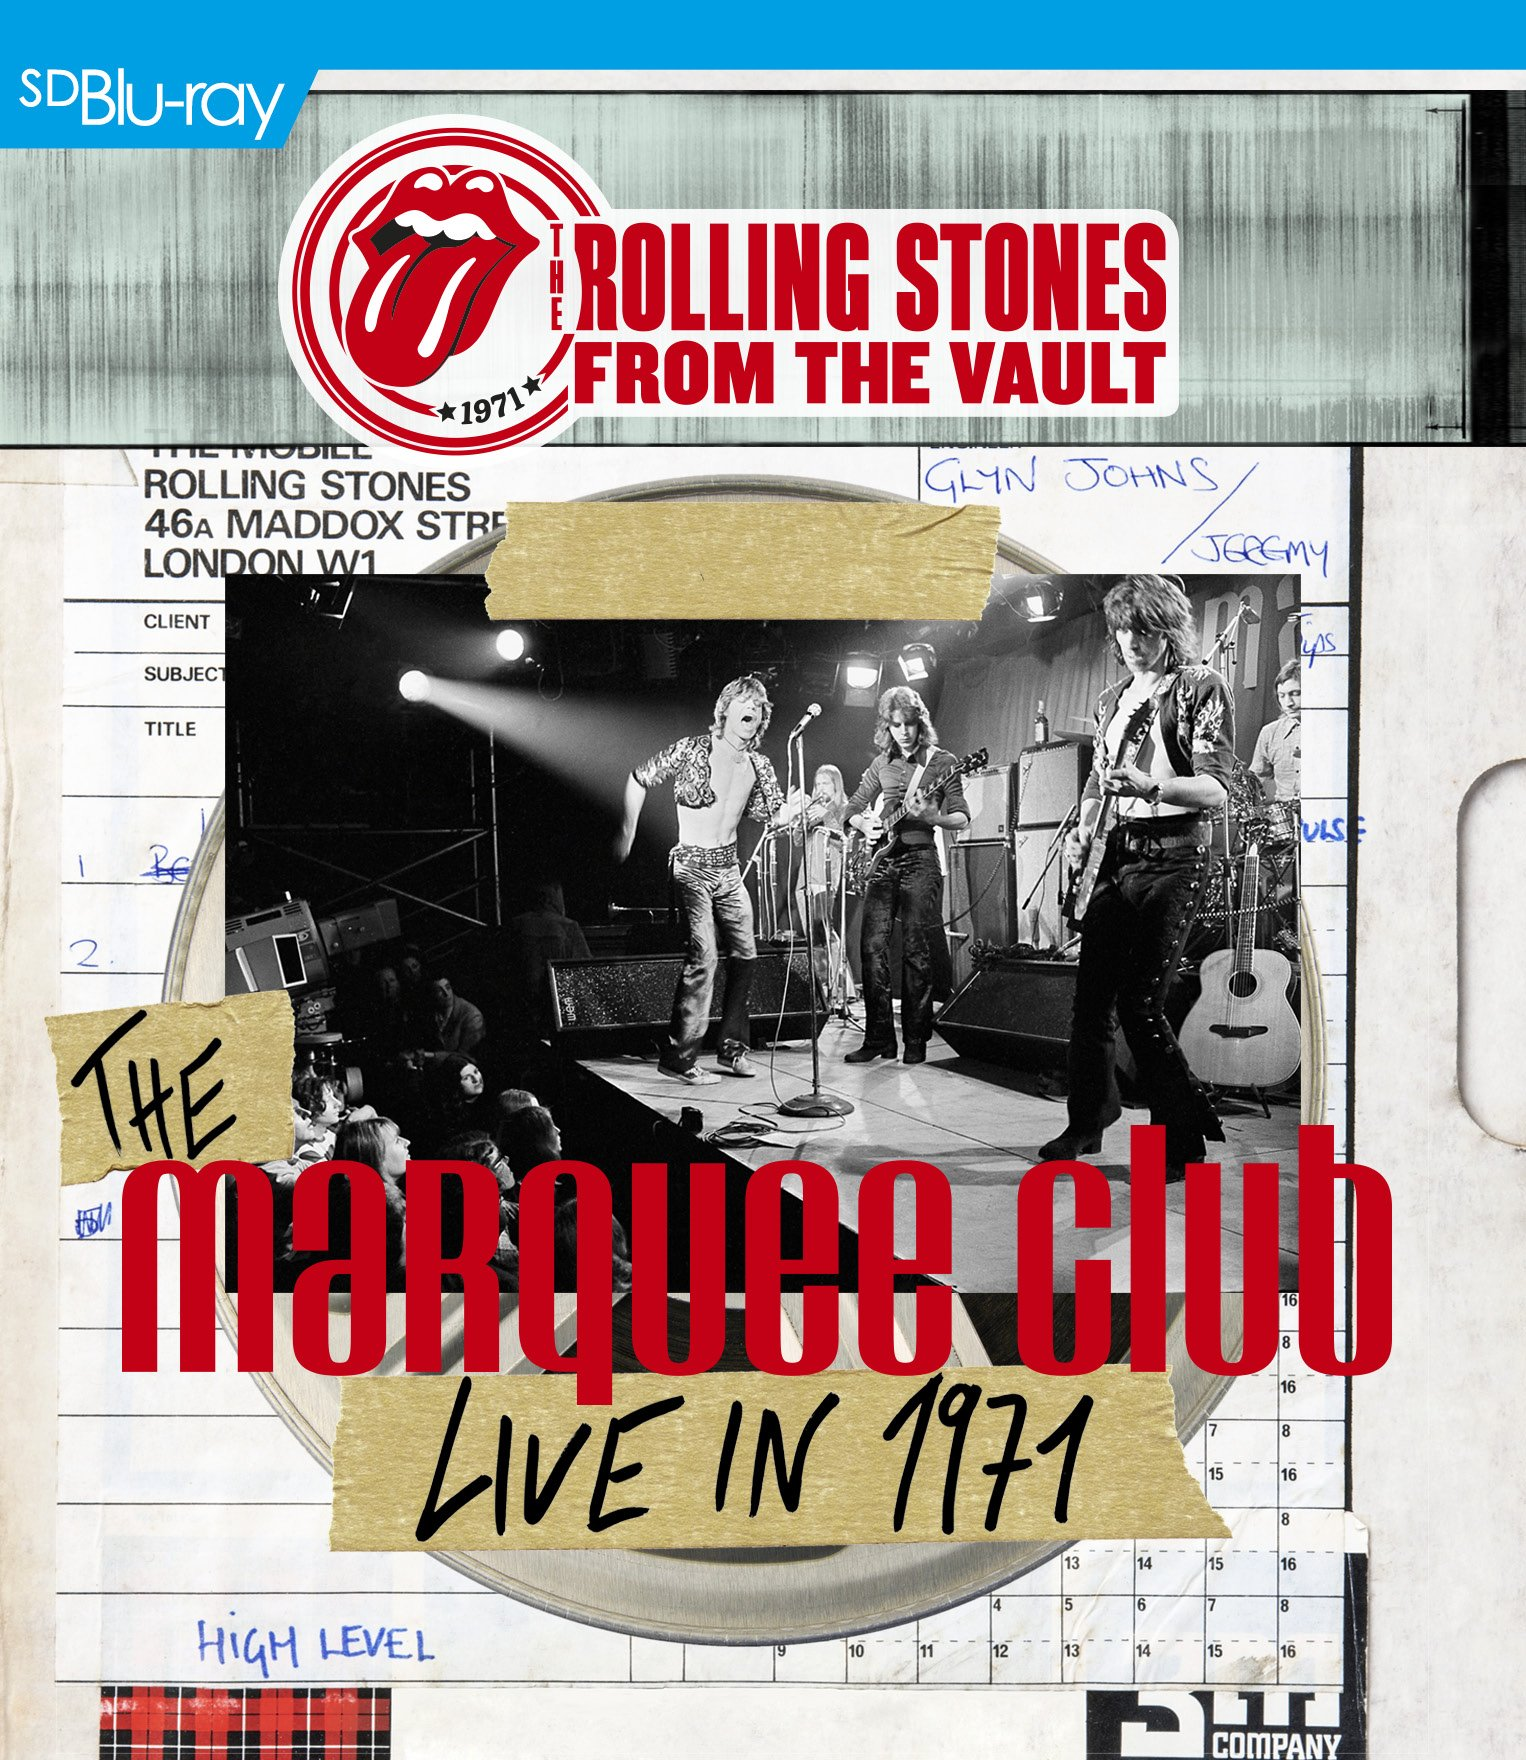 Blu-ray : The Rolling Stones - The Rolling Stones From the Vault: The Marquee Club Live in 1971 (With CD, 2 Disc)